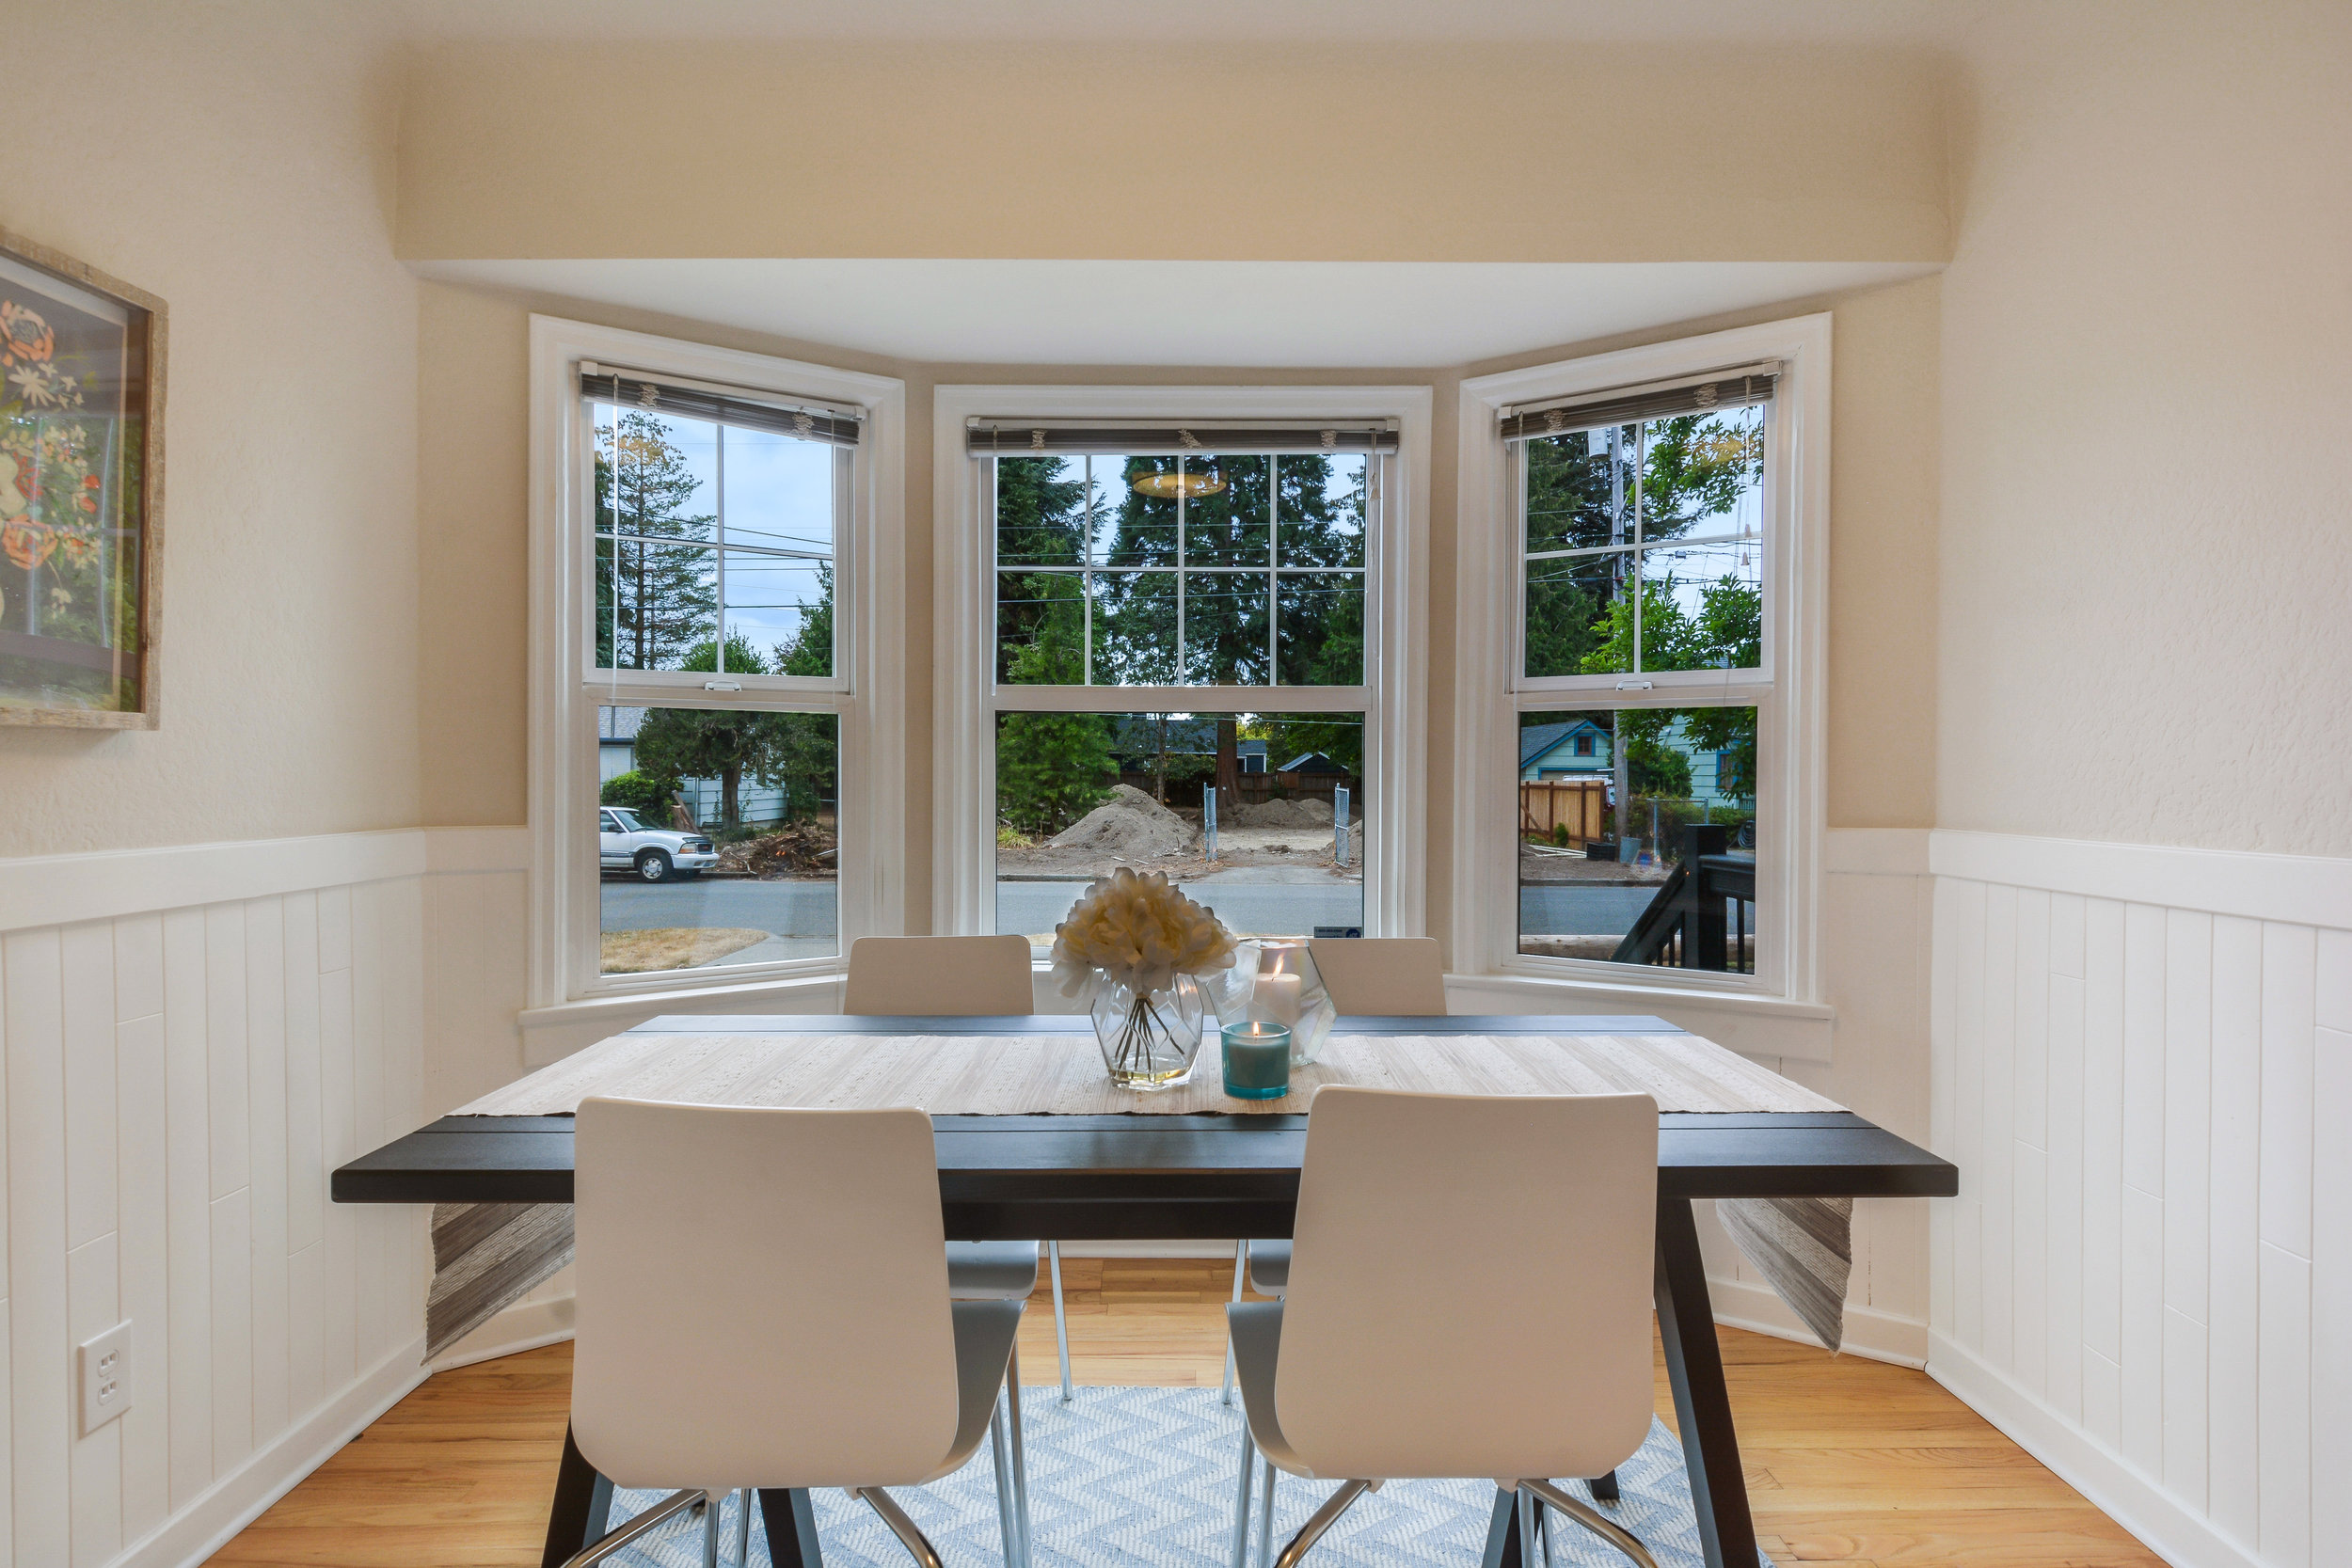 The shape, character, and light these bay windows create is lovely. Set a fancy table, or keep it simple, and casual, either way, this room is pretty.